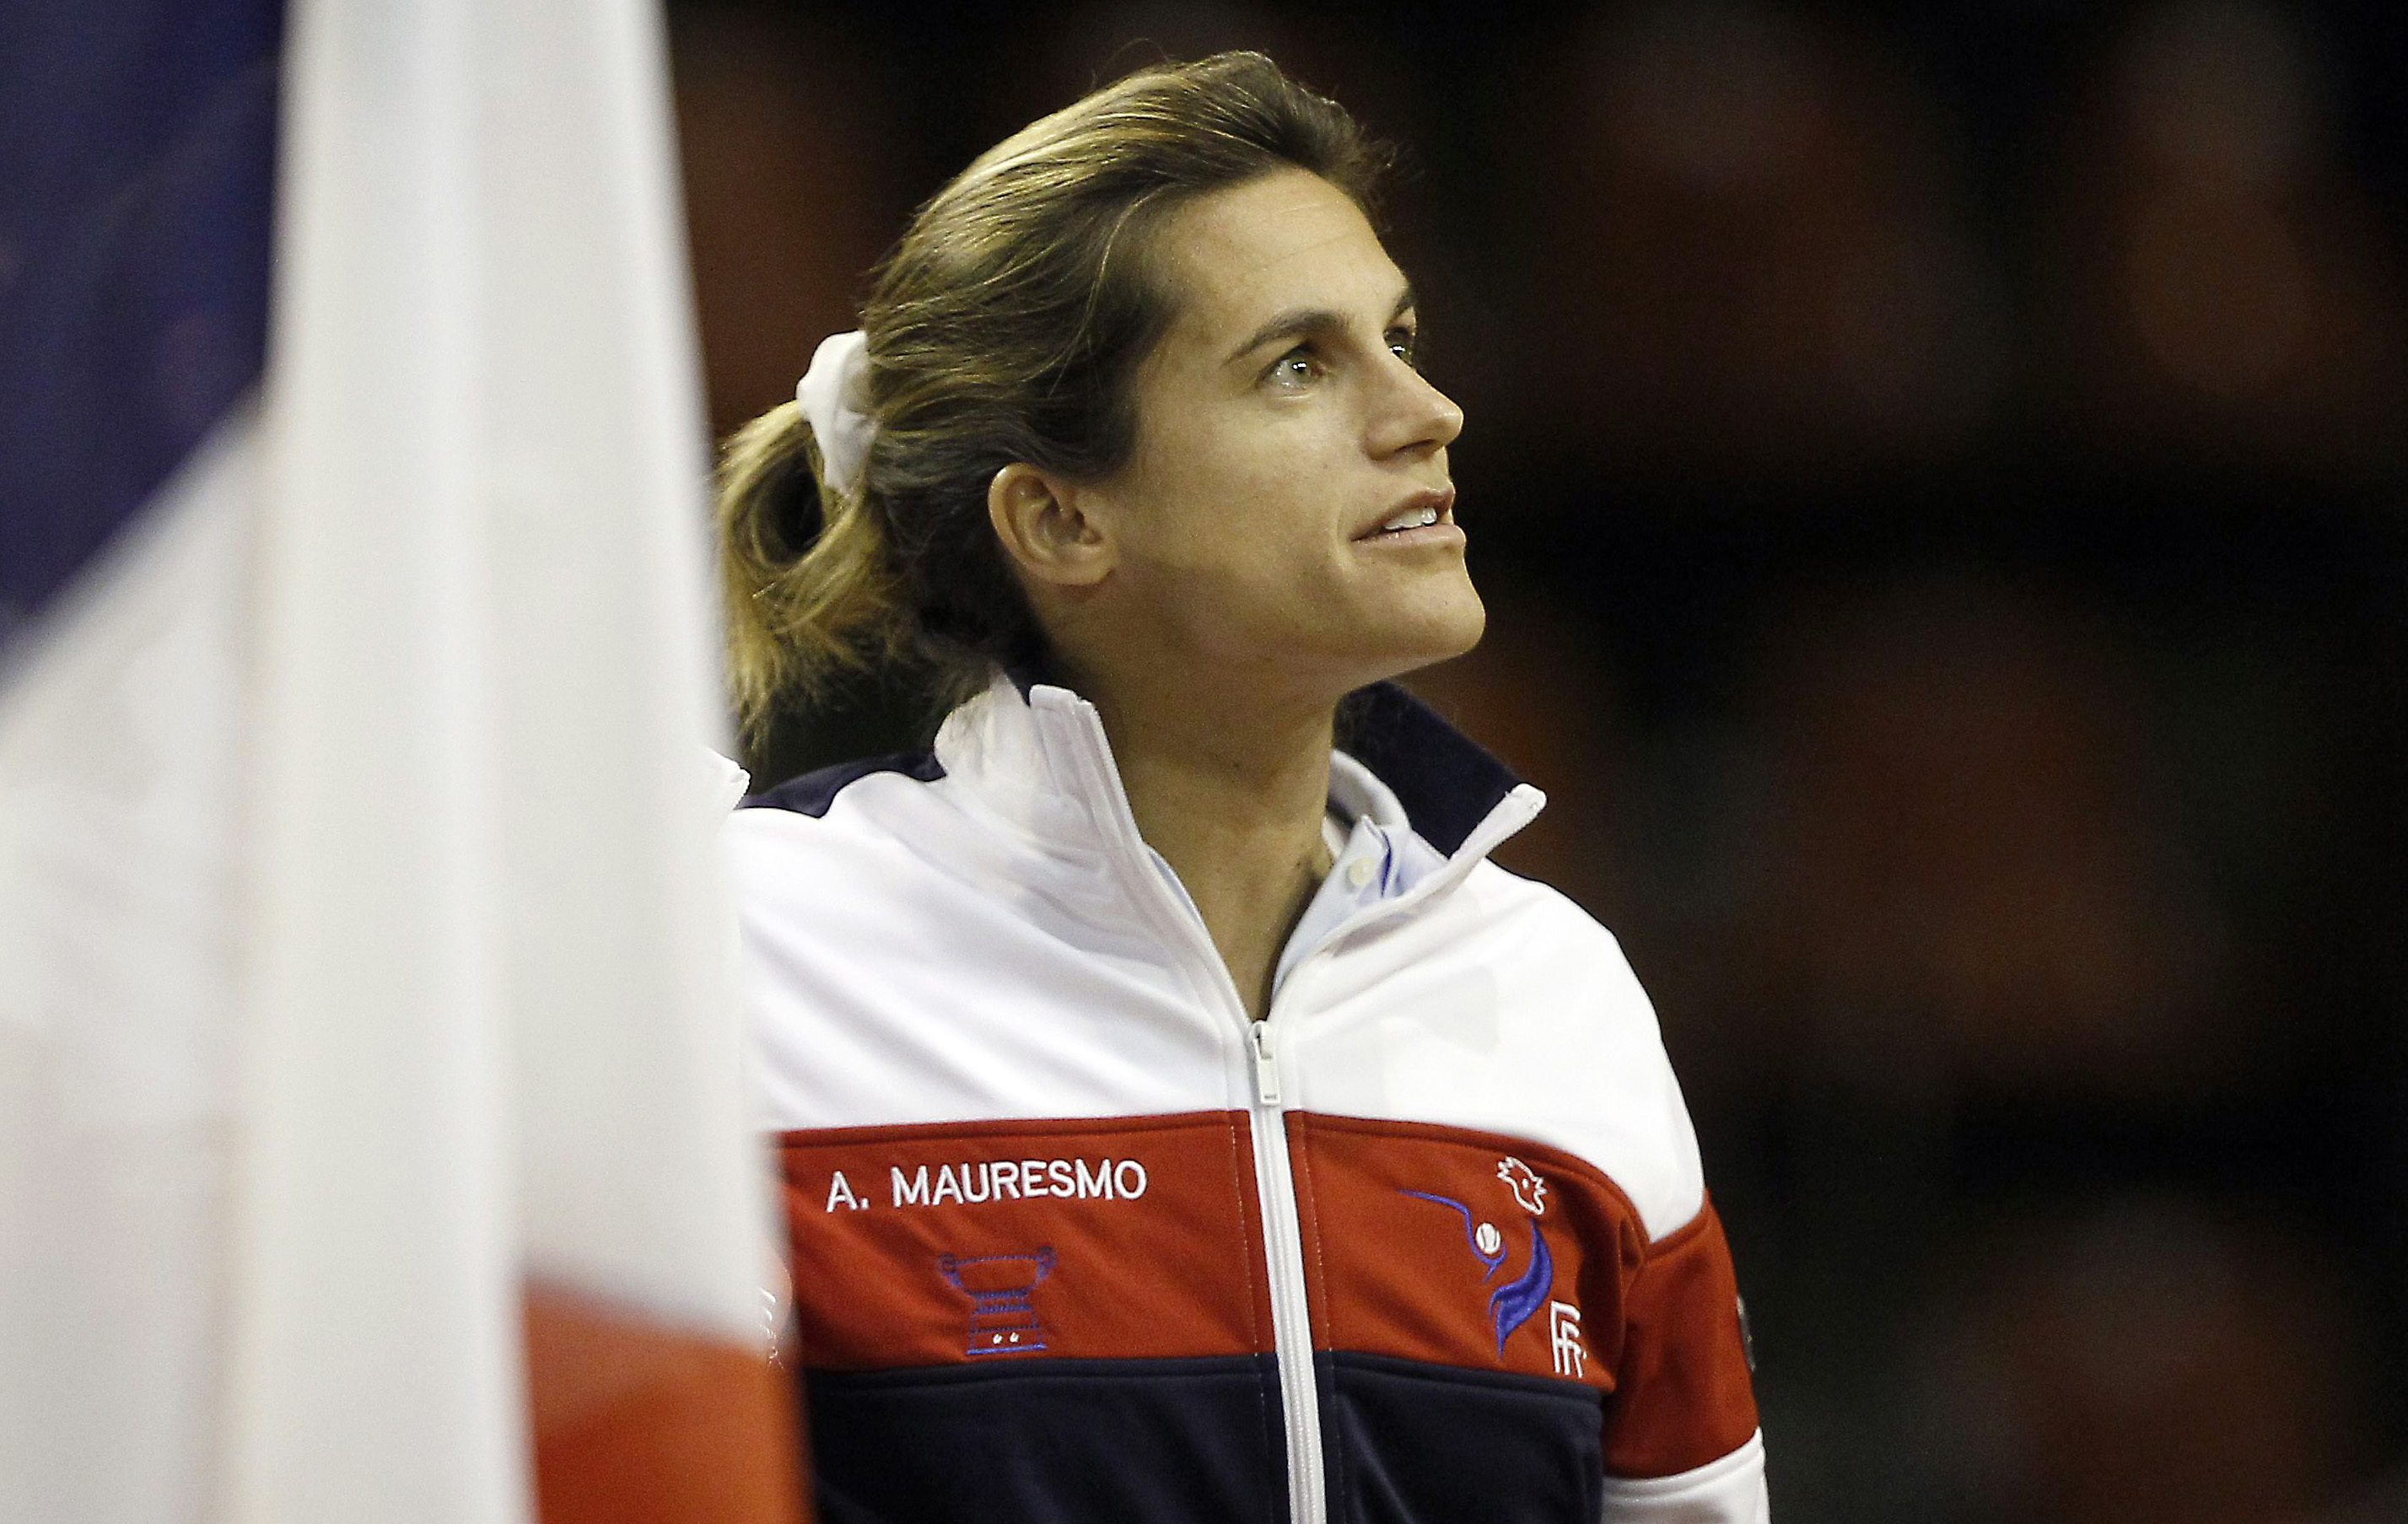 Tennis - Fed Cup - On prend les m�mes et on recommence